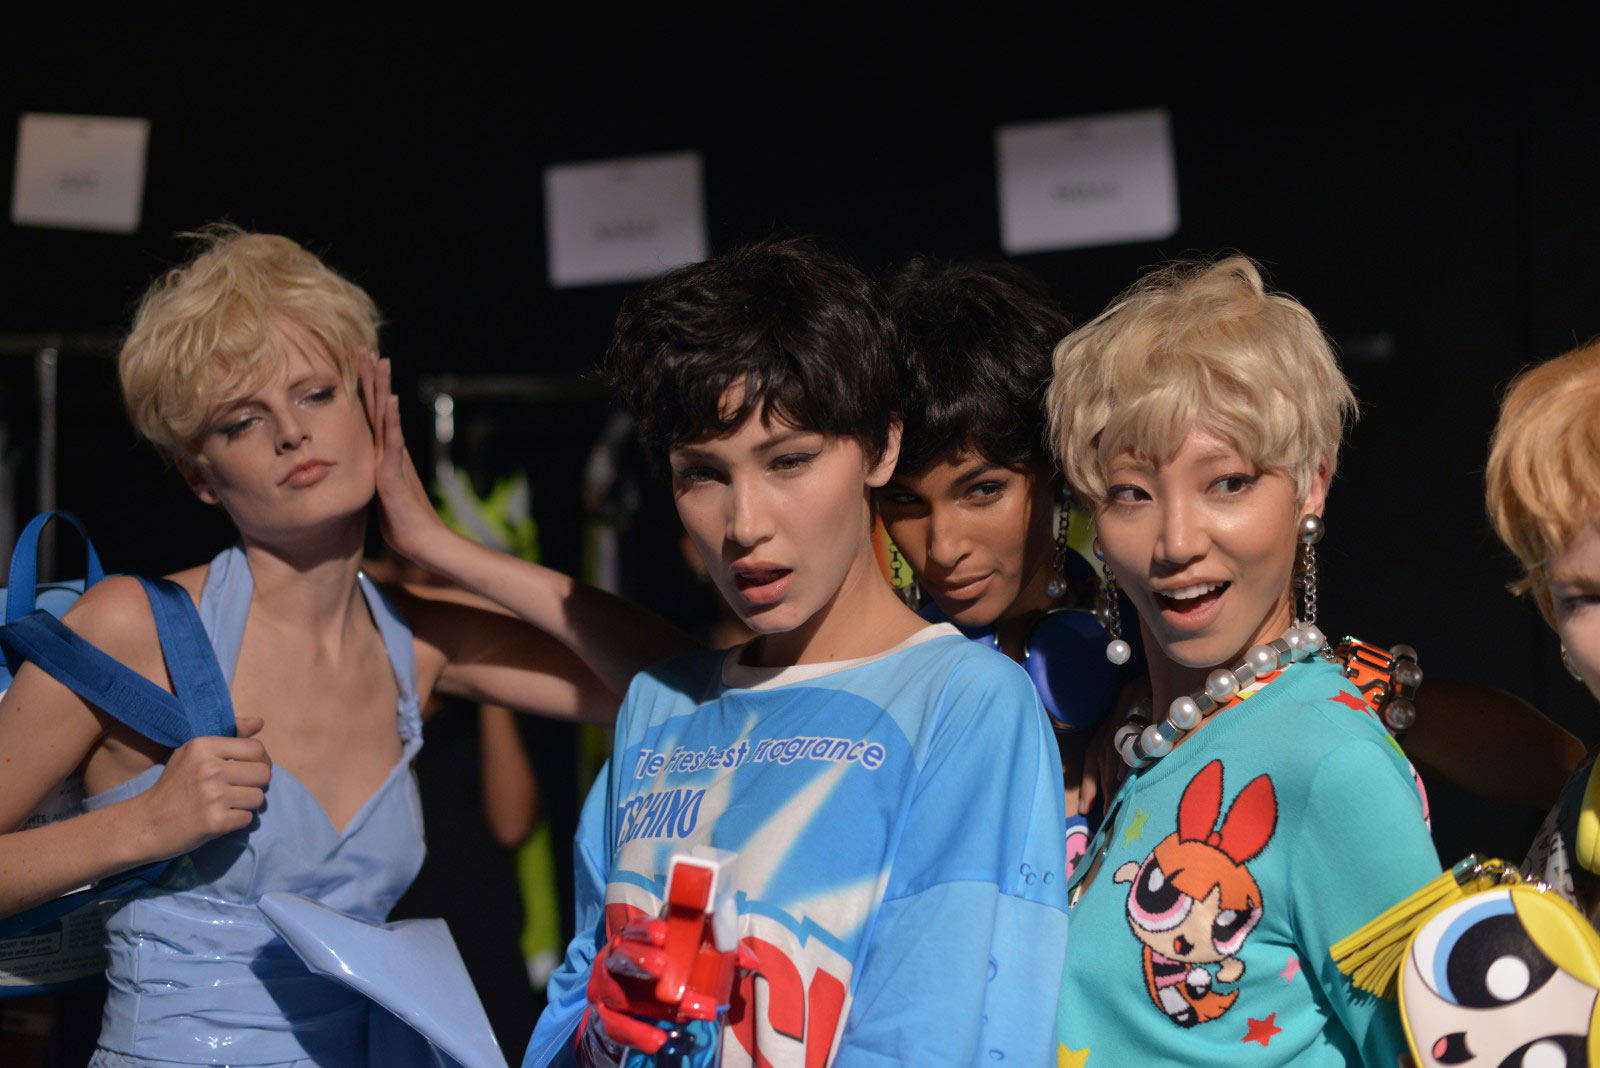 Bella Hadid and her co-models backstage having fun